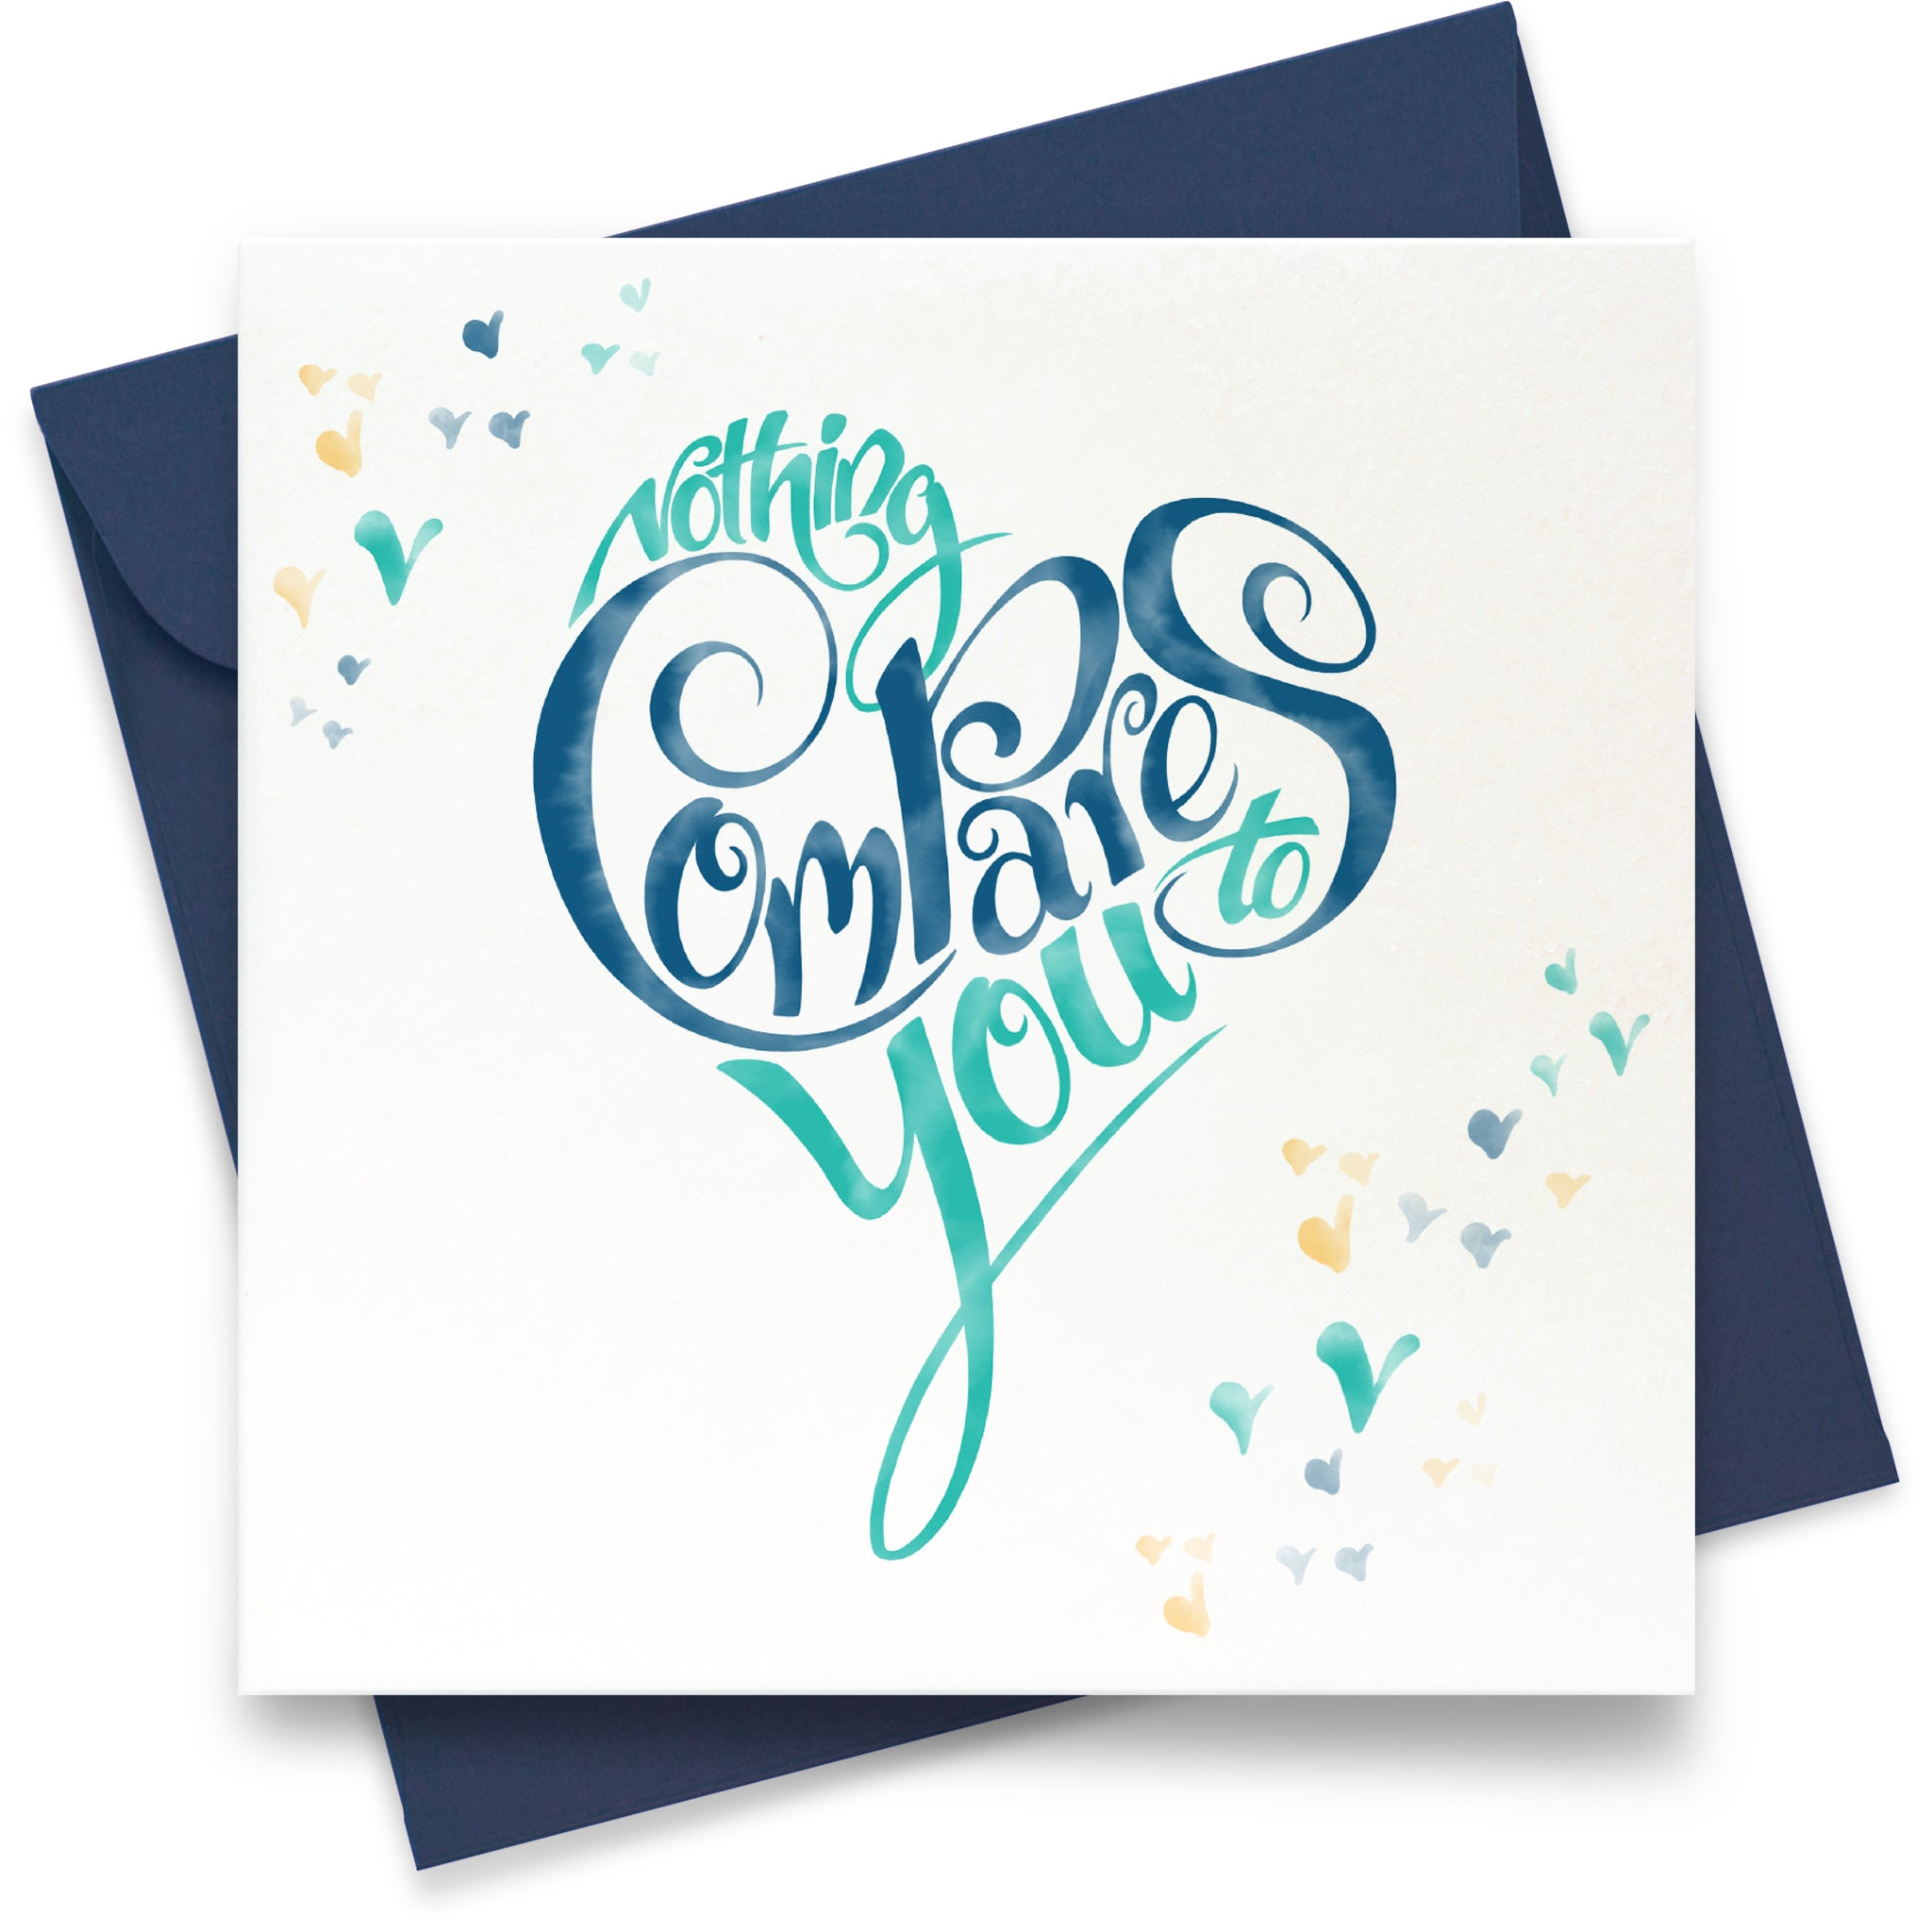 Nothing Compares to You: Greeting Card